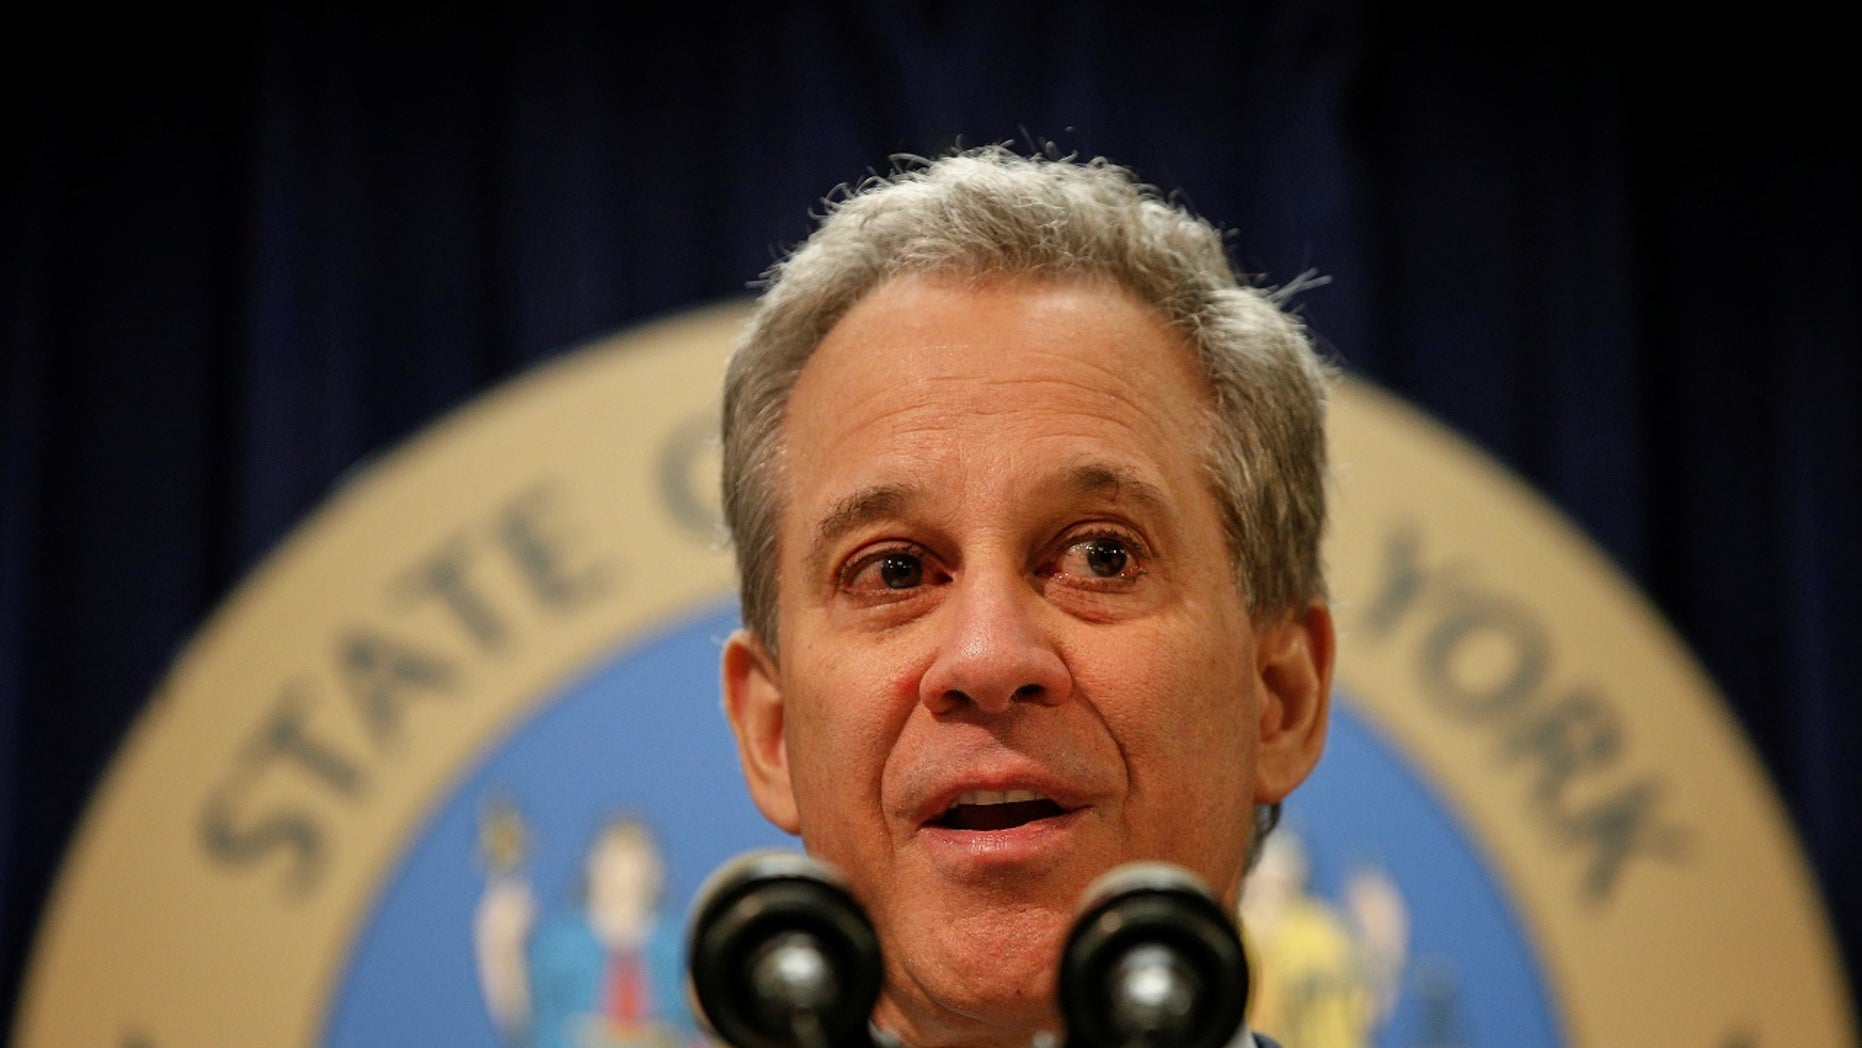 New York Attorney General Eric Schneiderman resigned Monday night following allegations of sexual misconduct.